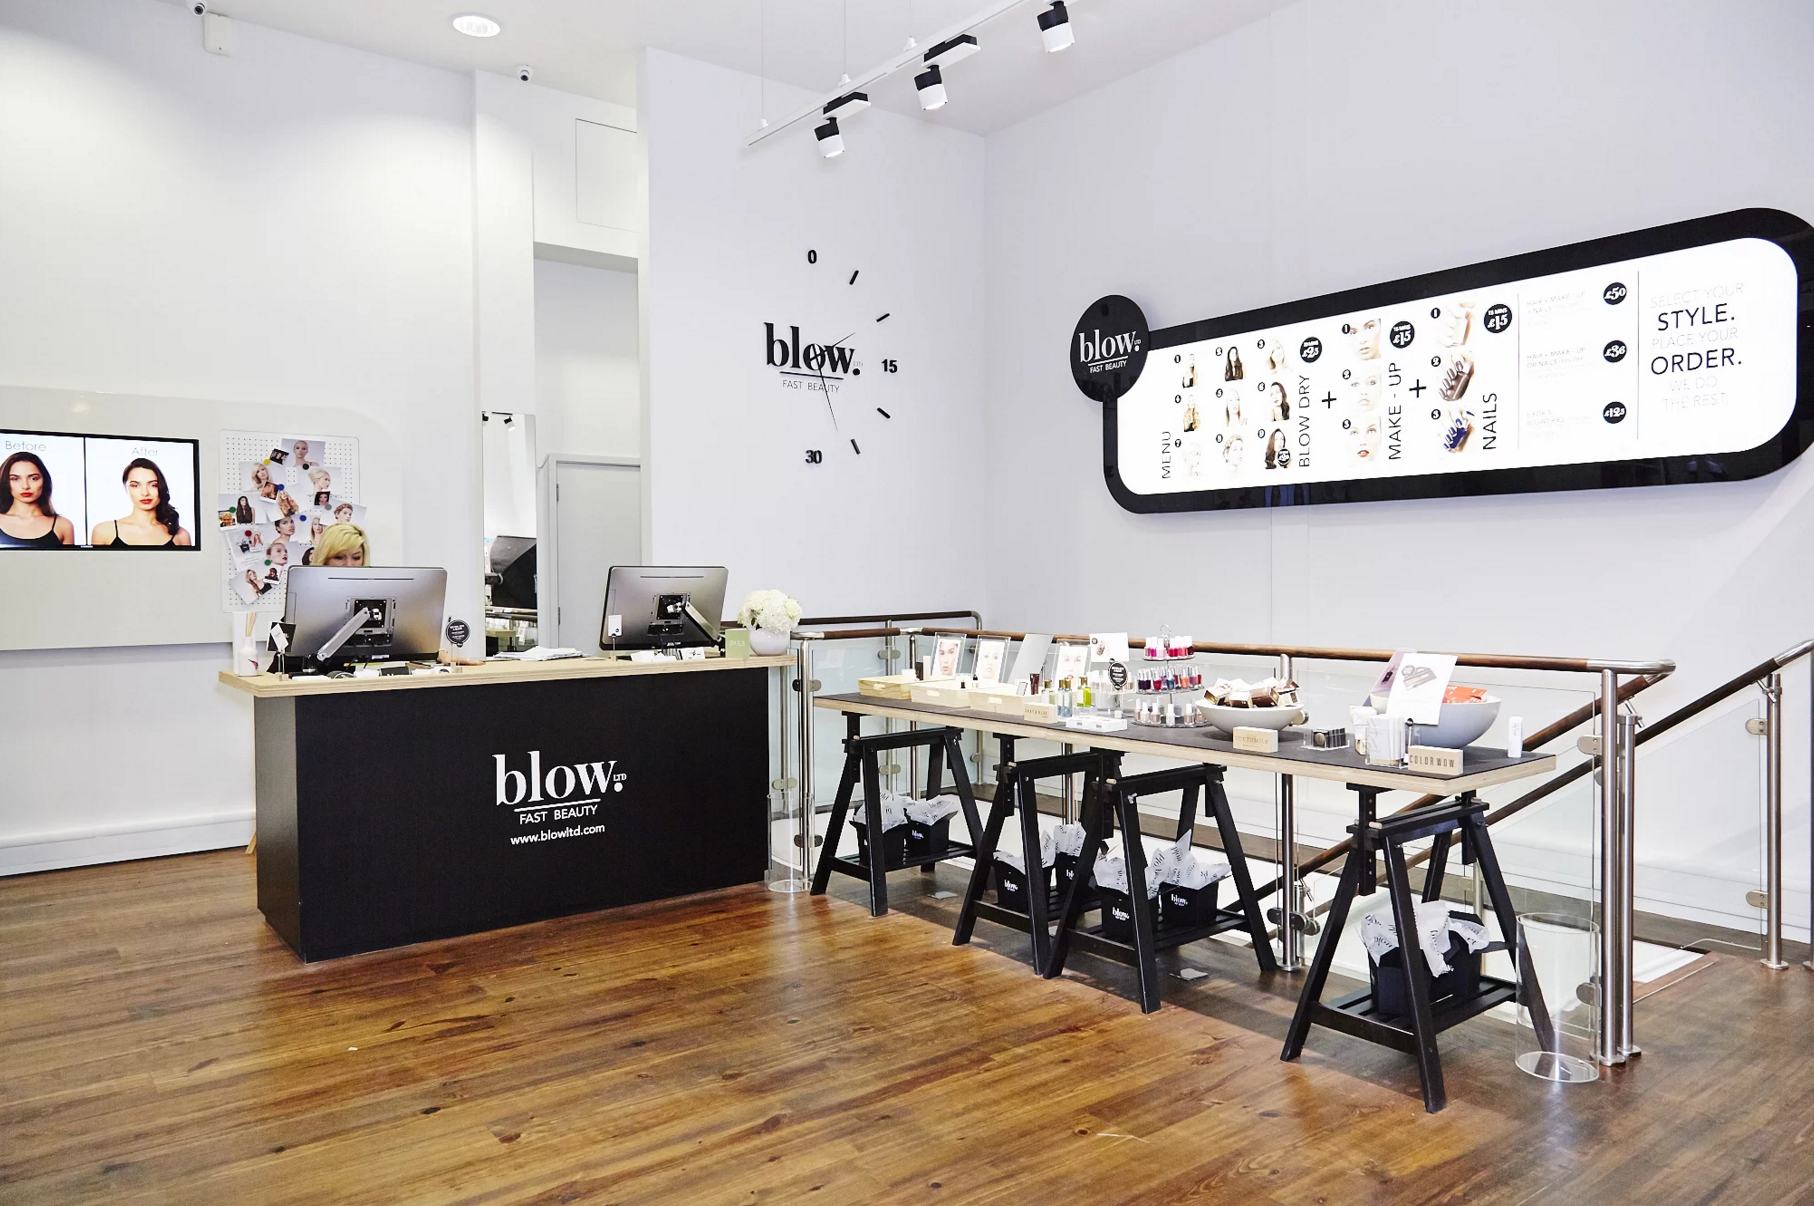 The best London blow-dry bars images